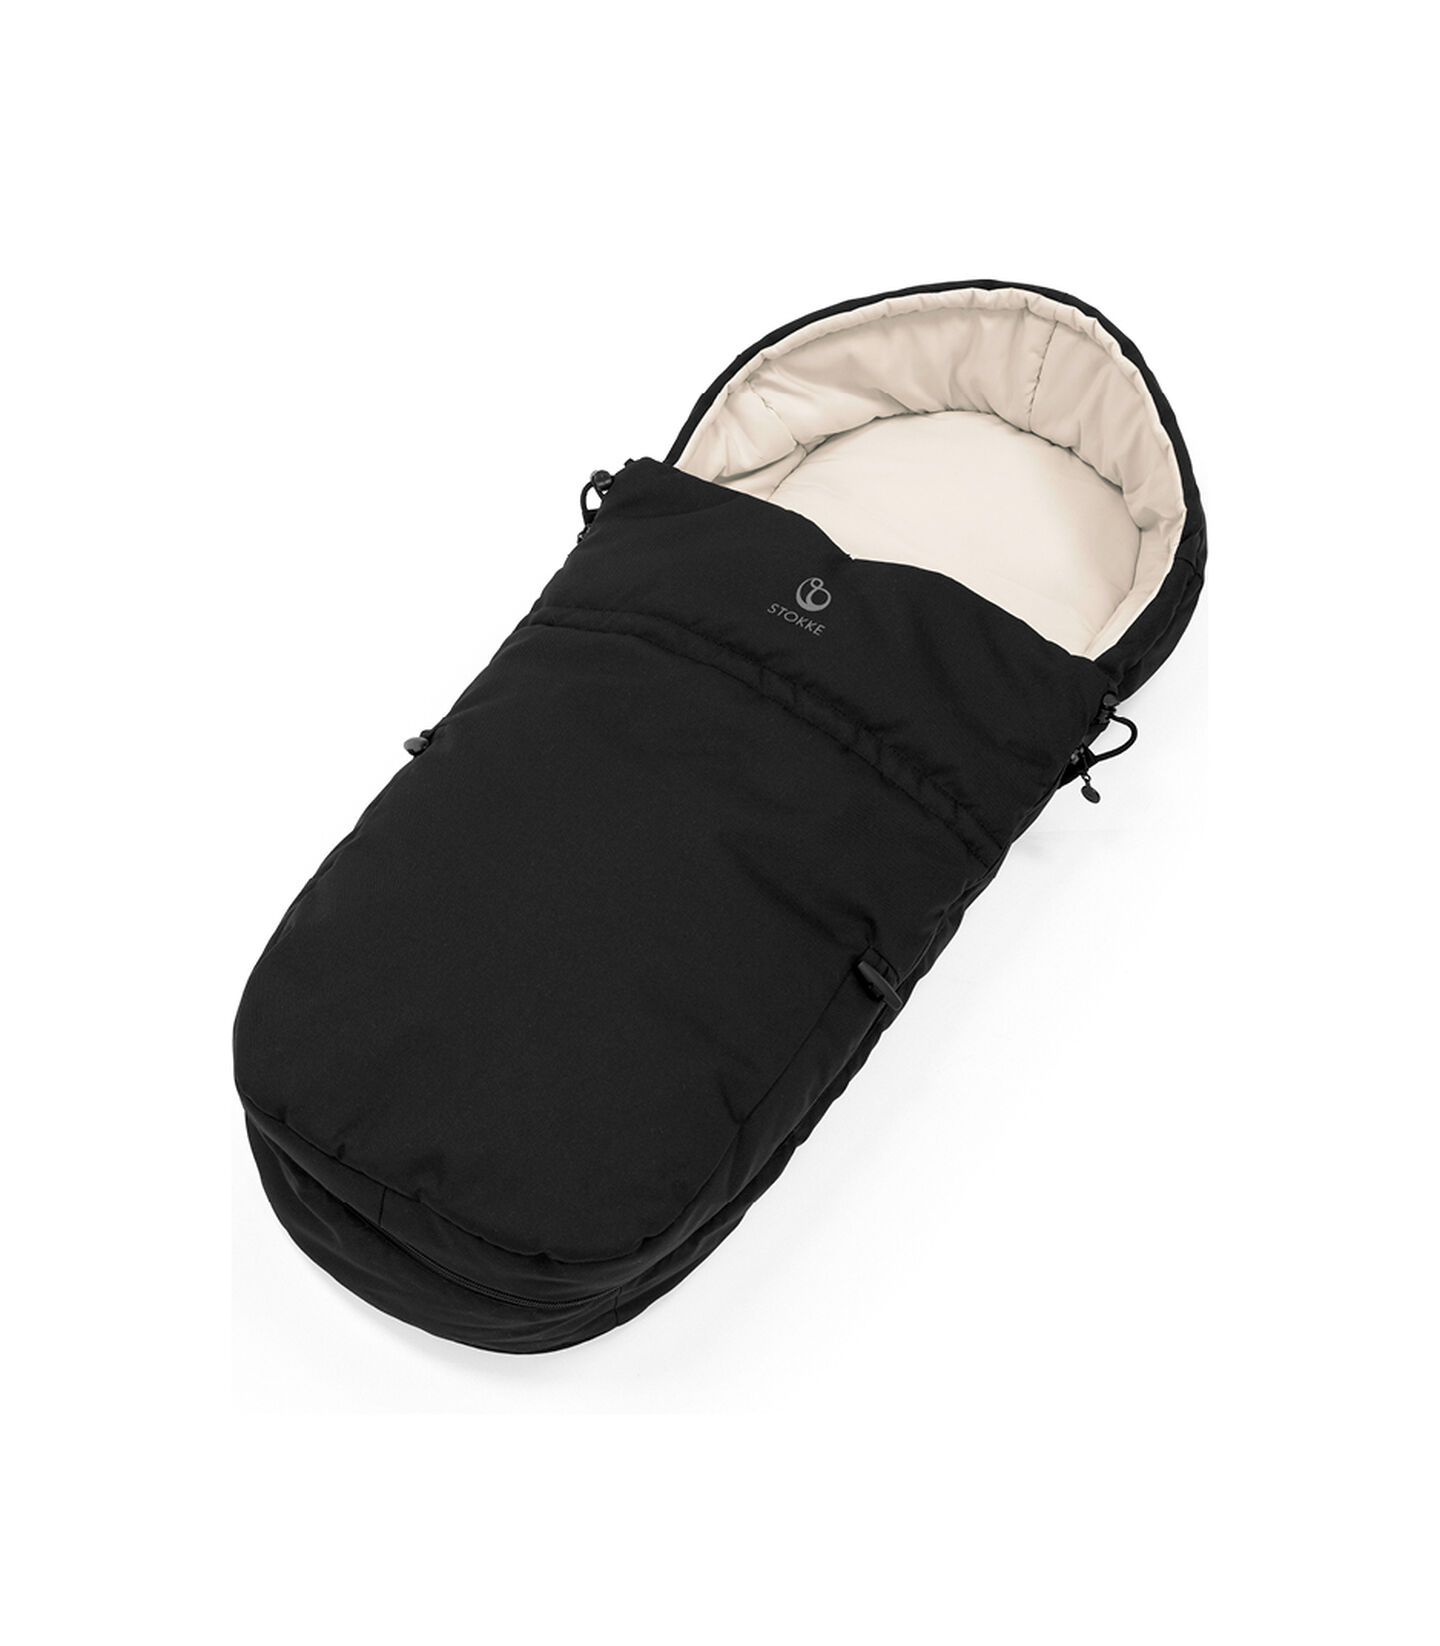 Stokke® Stroller Softbag Black, Black, mainview view 2